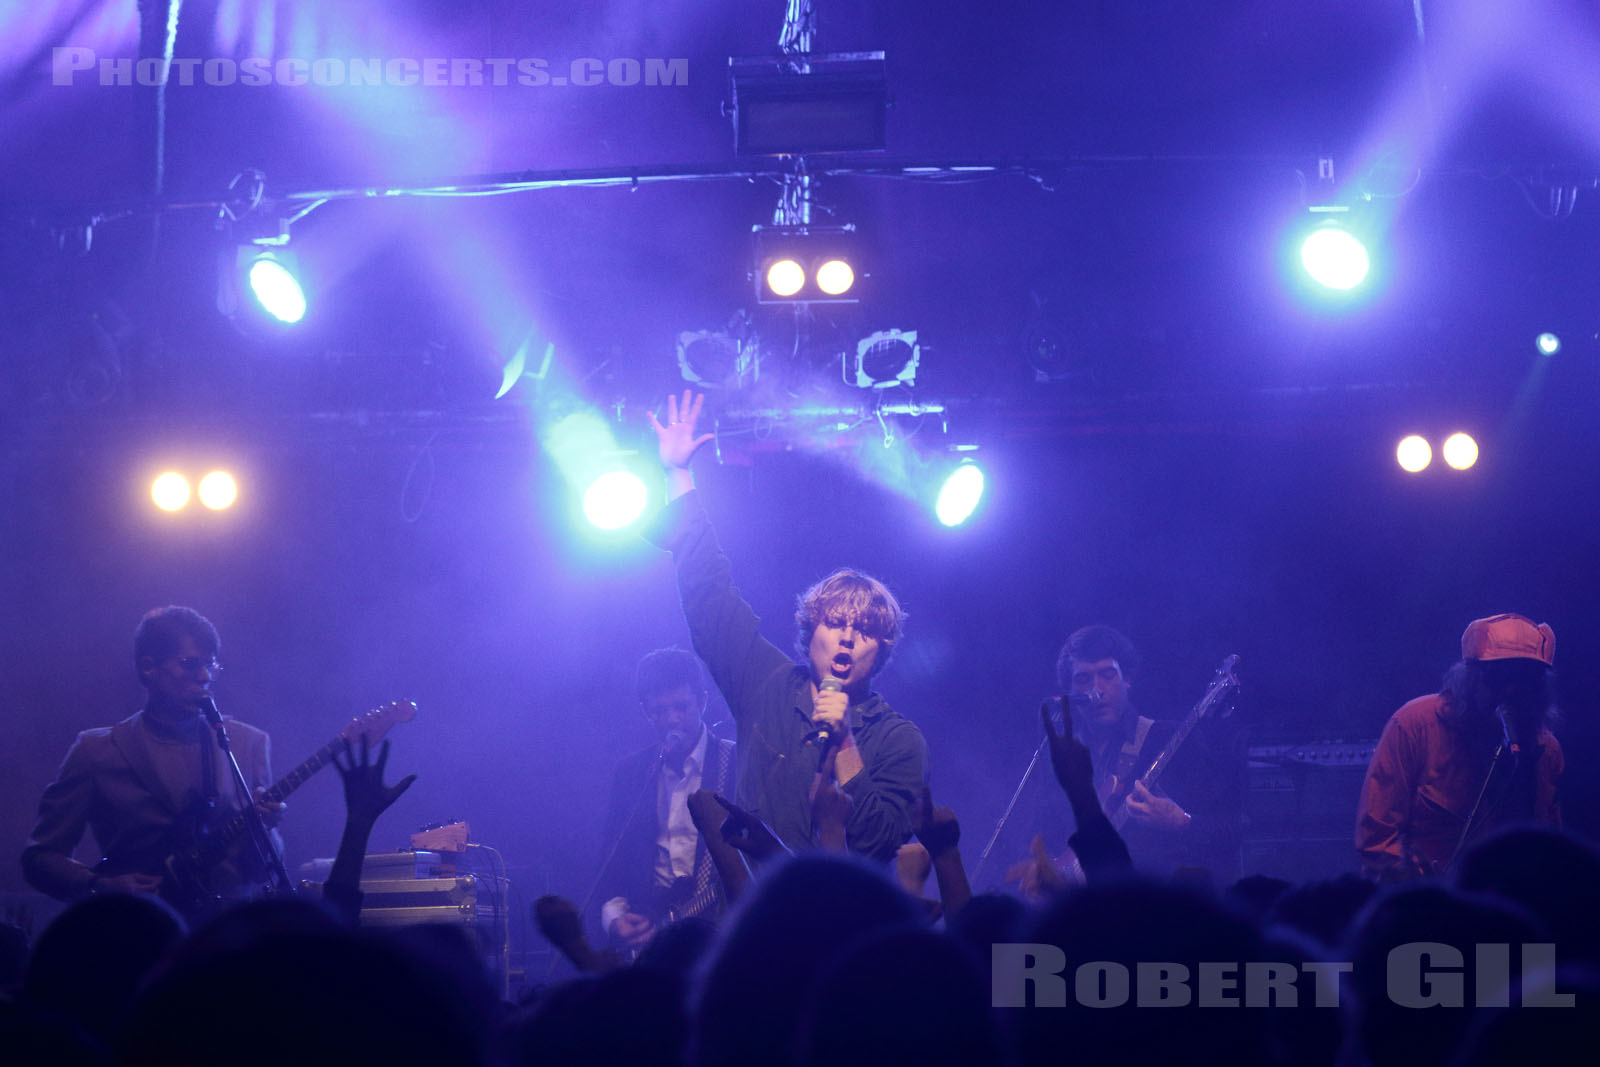 TY SEGALL AND THE MUGGERS - 2016-05-31 - PARIS - Cabaret Sauvage